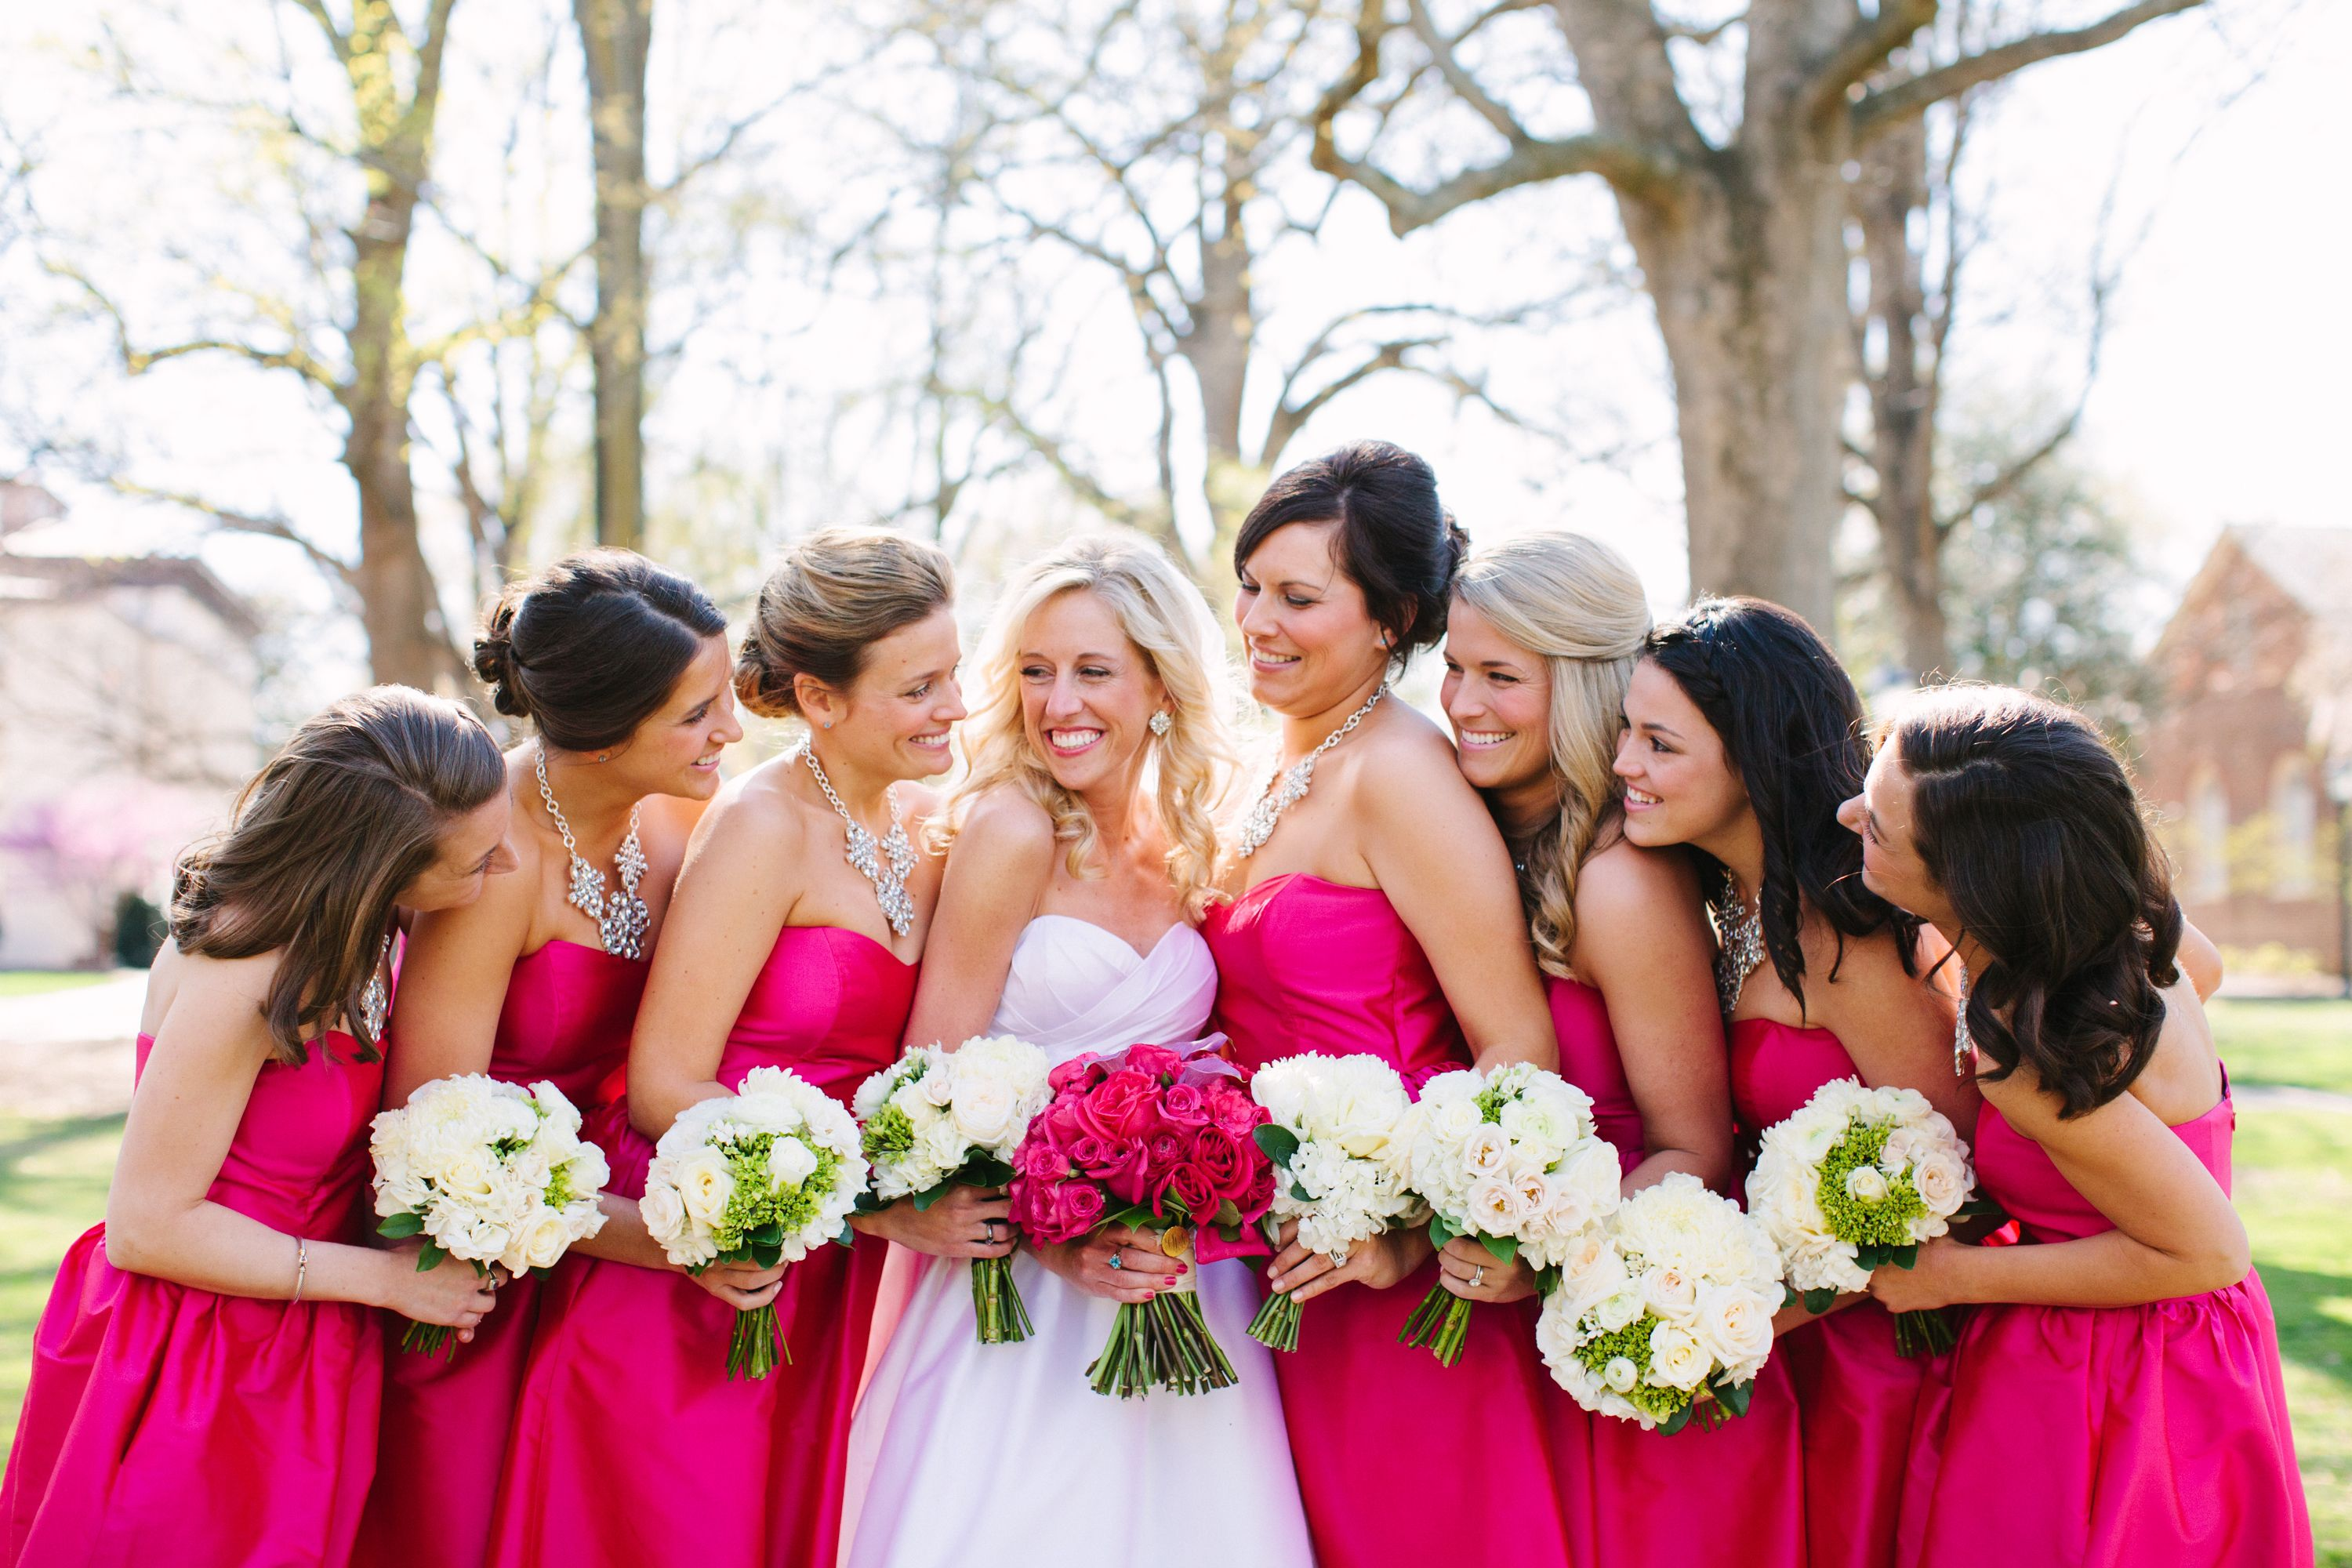 Hot pink bridesmaid dresses and groomsmens ties multi bright hot pink bridesmaid dresses and groomsmens ties multi bright flowers wedding pinterest hot pink bridesmaids bright flowers and hot pink ombrellifo Gallery